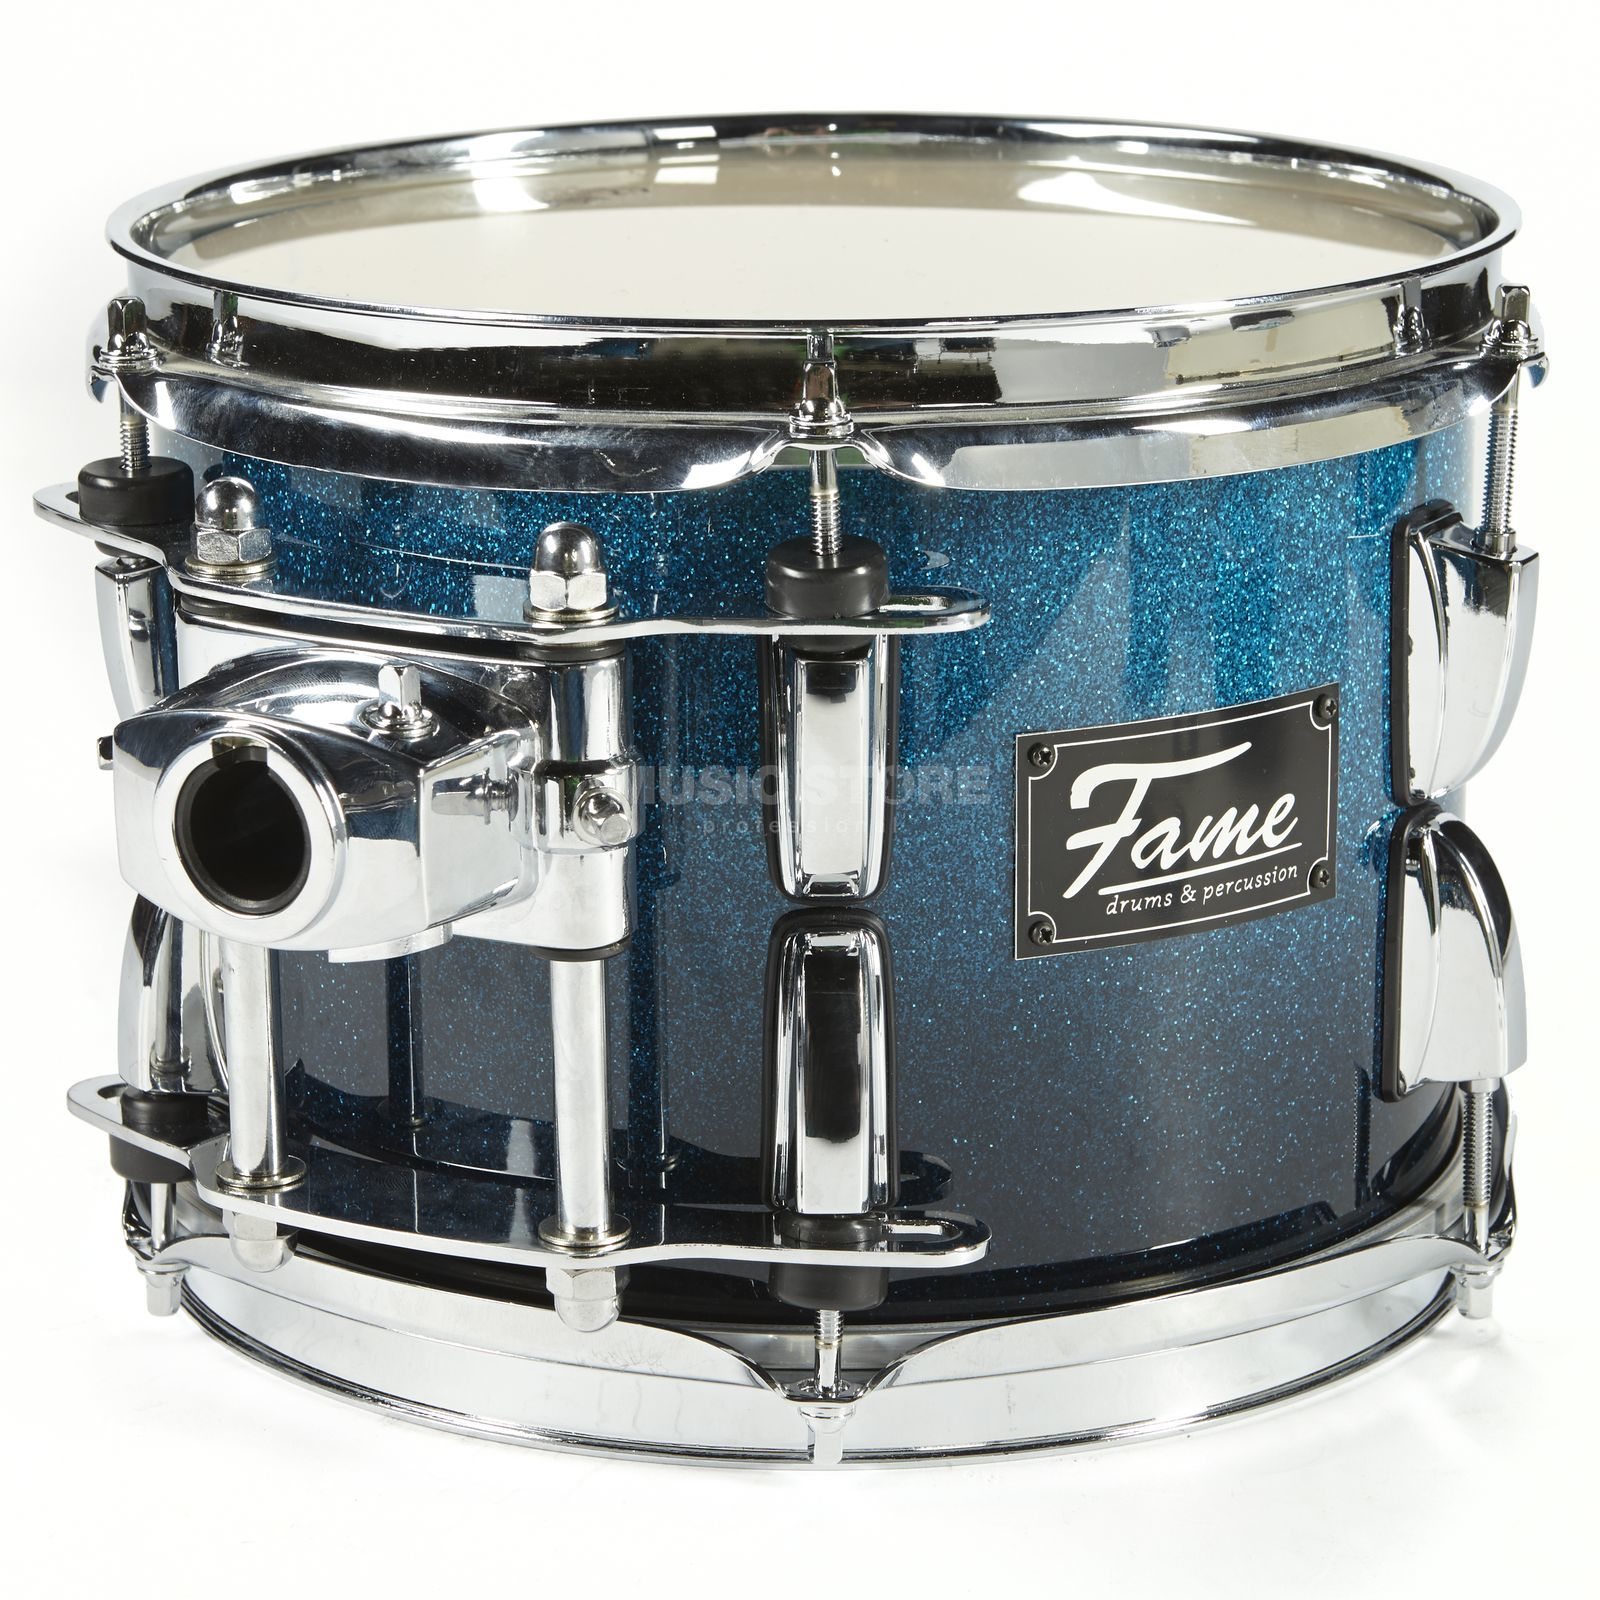 "Fame Fire Tom 12""x8"", #Blue Fade Sparkle Produktbild"